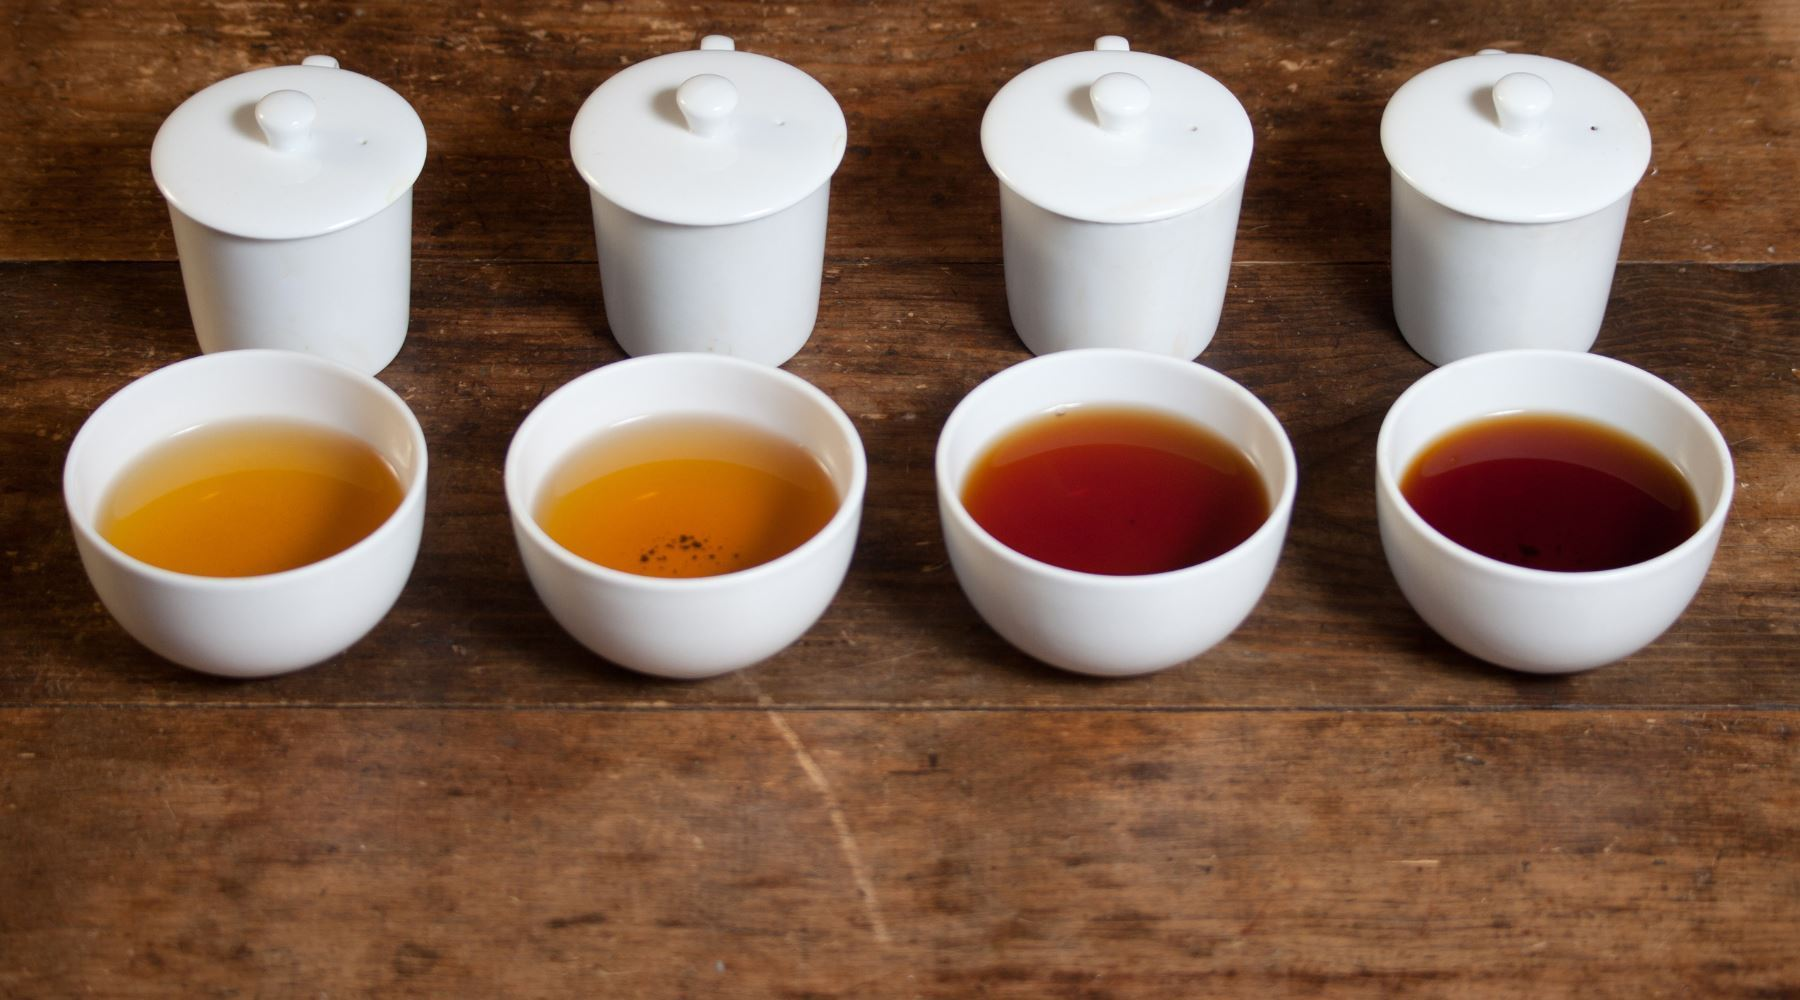 Tea Cupping: What is it?